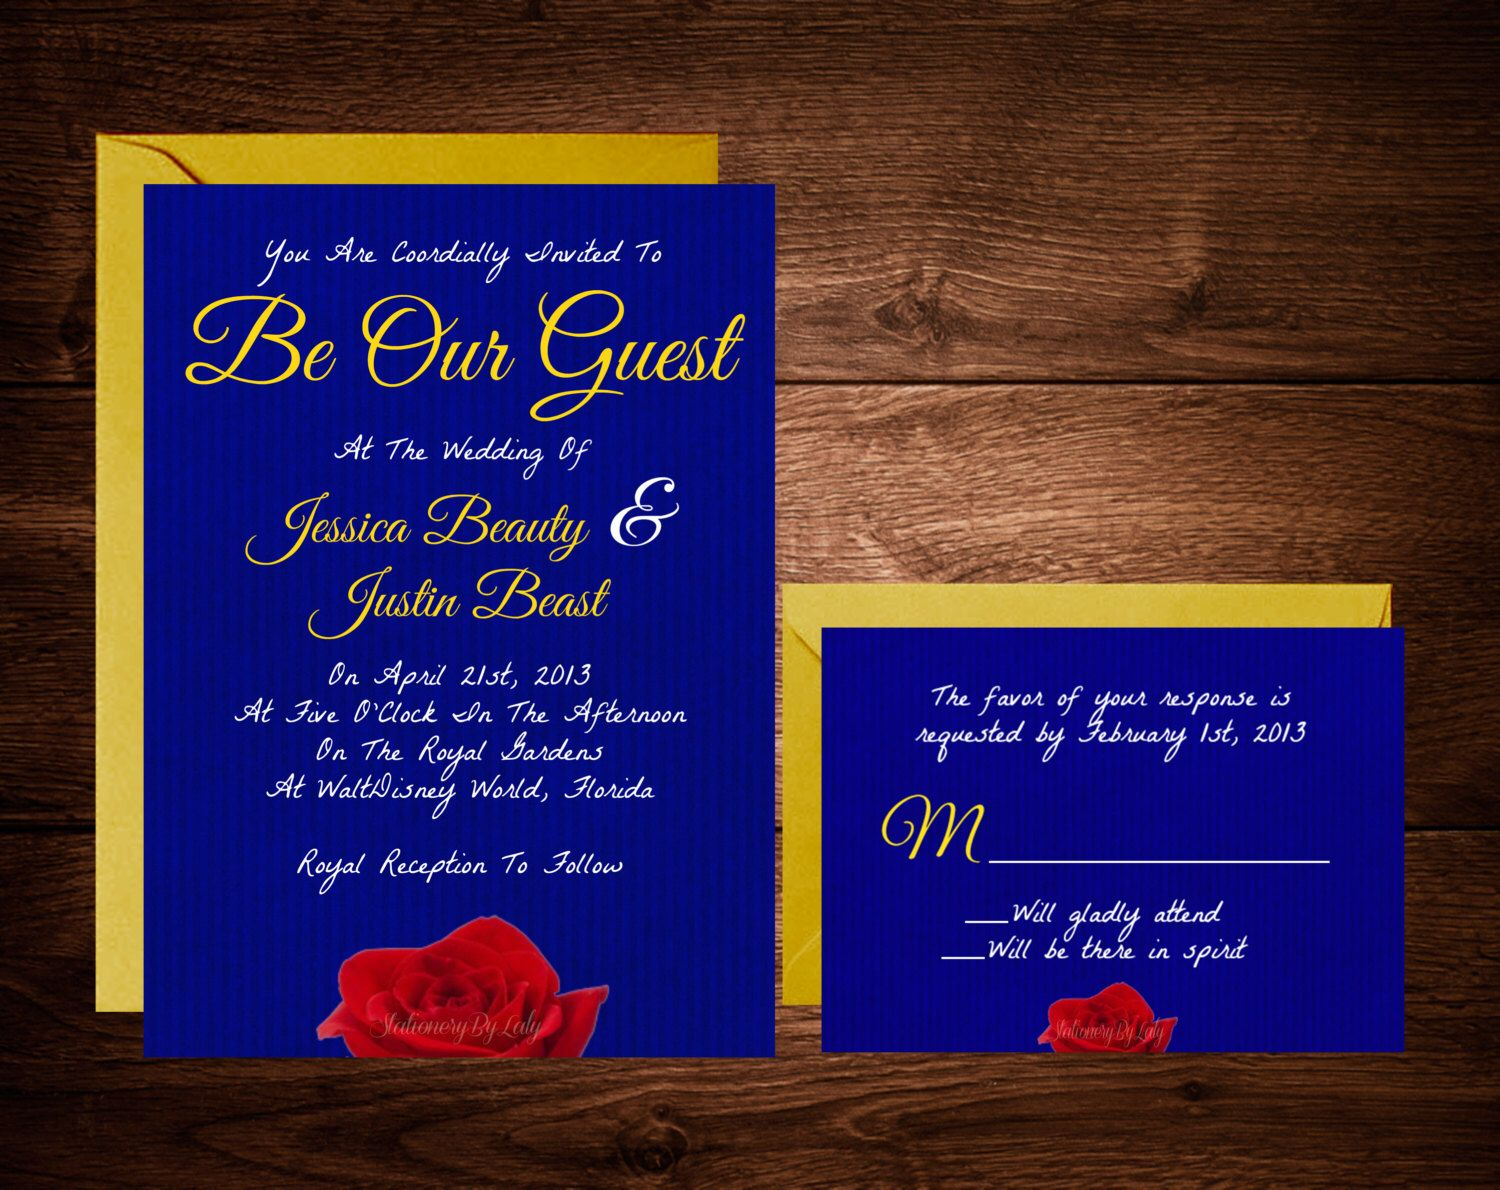 beauty and the beast wedding invitations, fairytale wedding, Wedding invitations